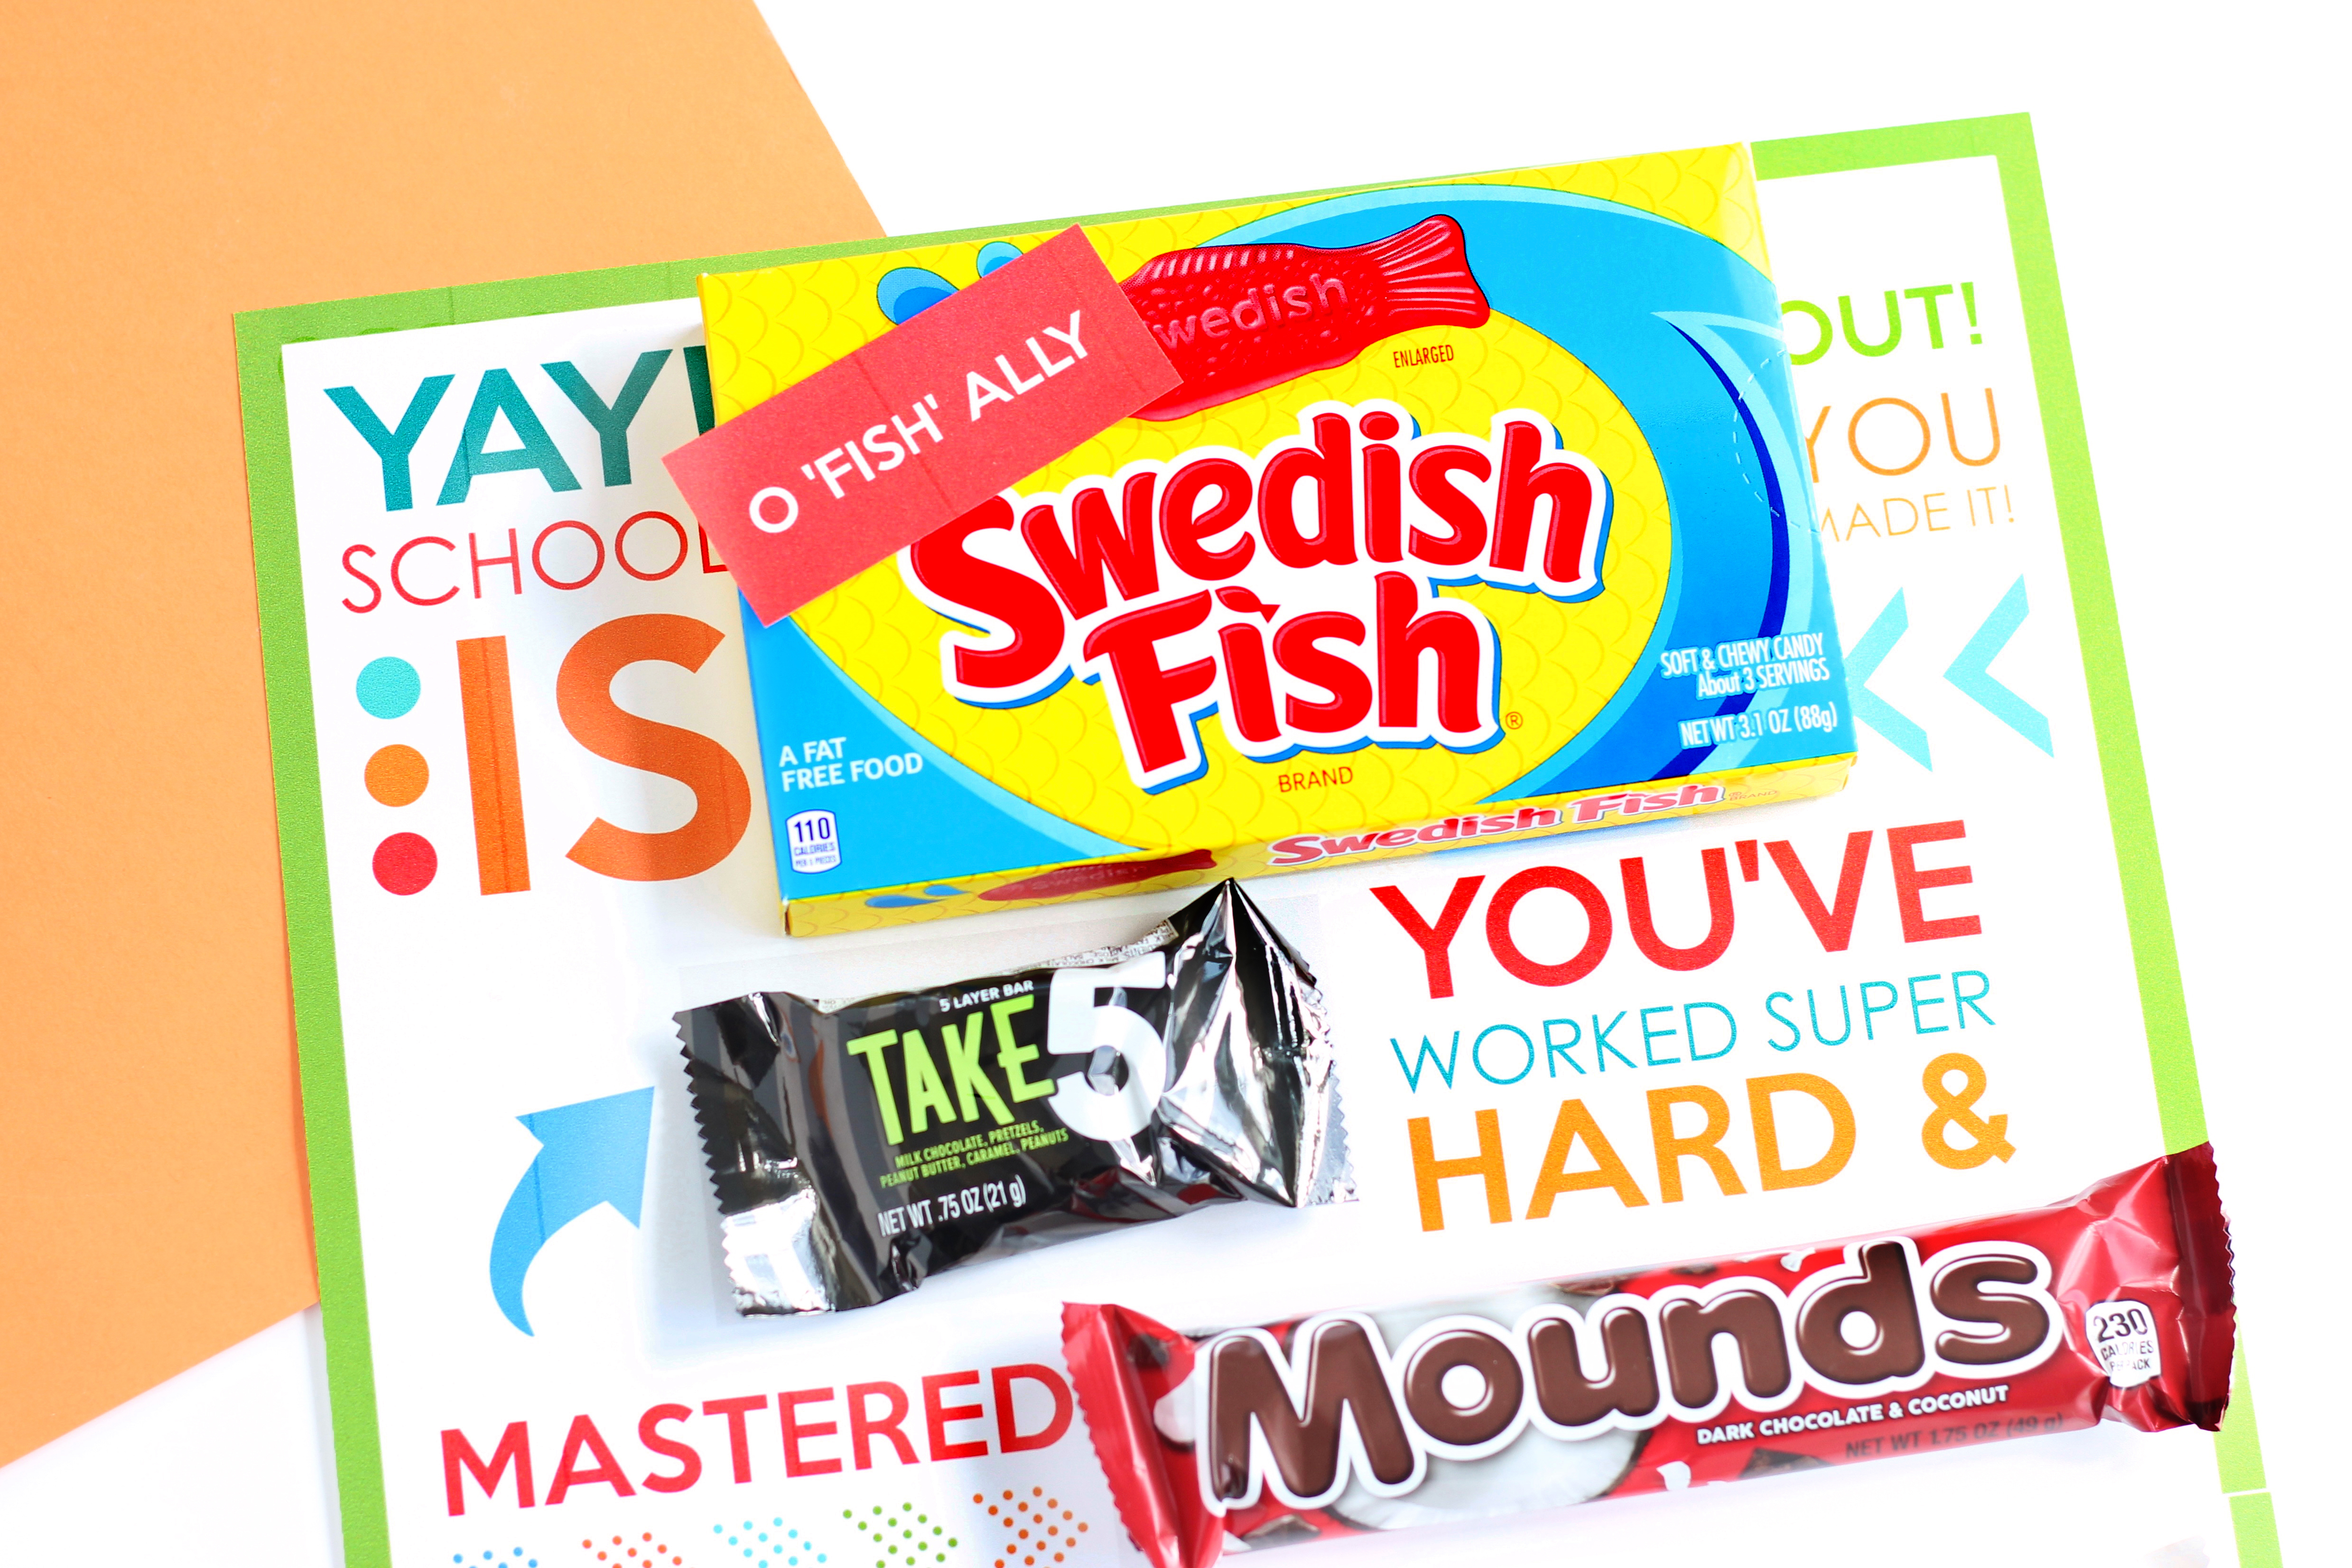 Candy grams are a great back to school gift.